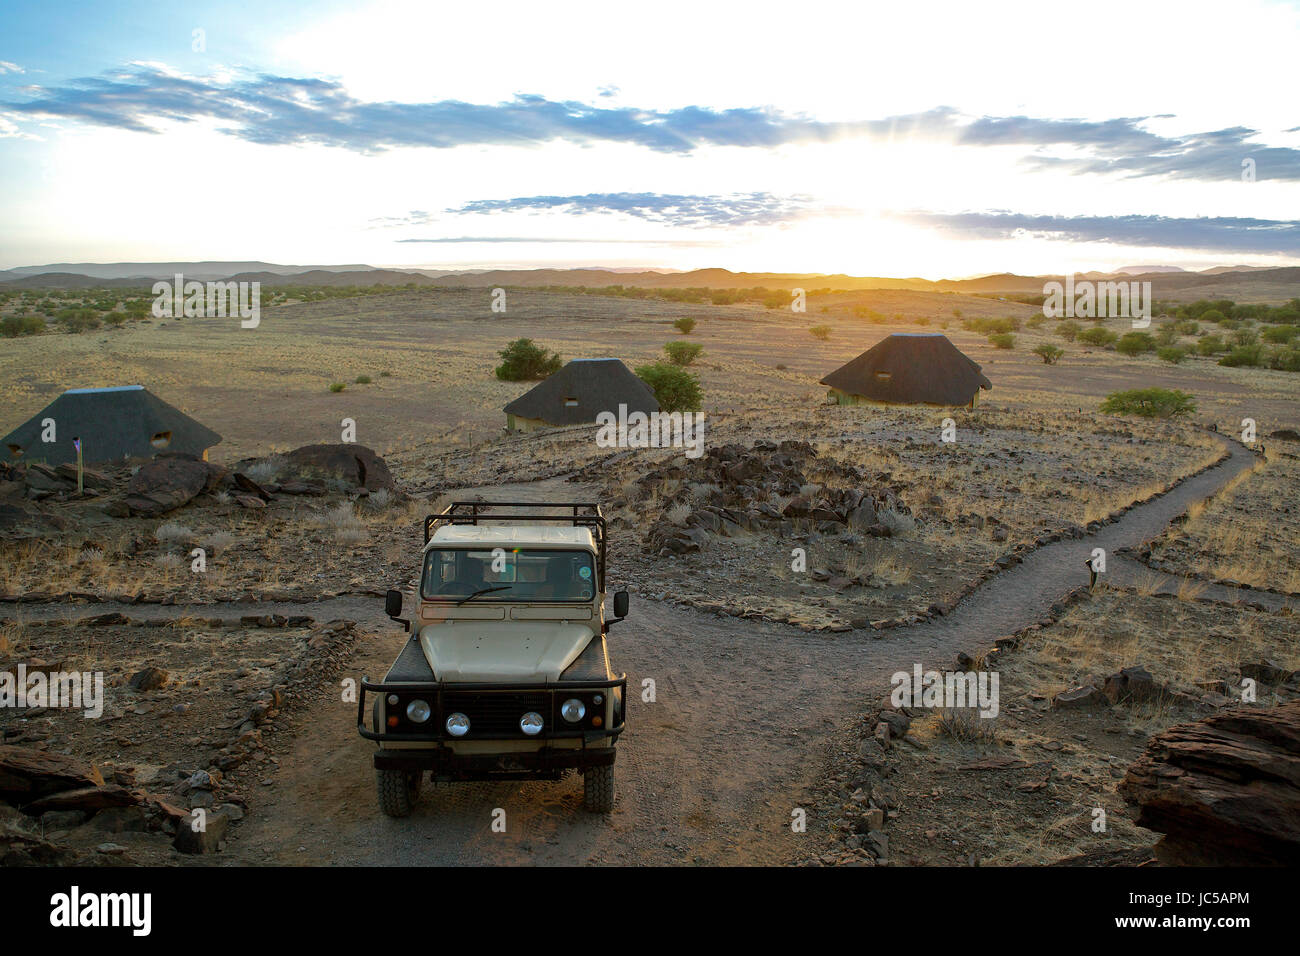 Parked car with huts in background - Stock Image